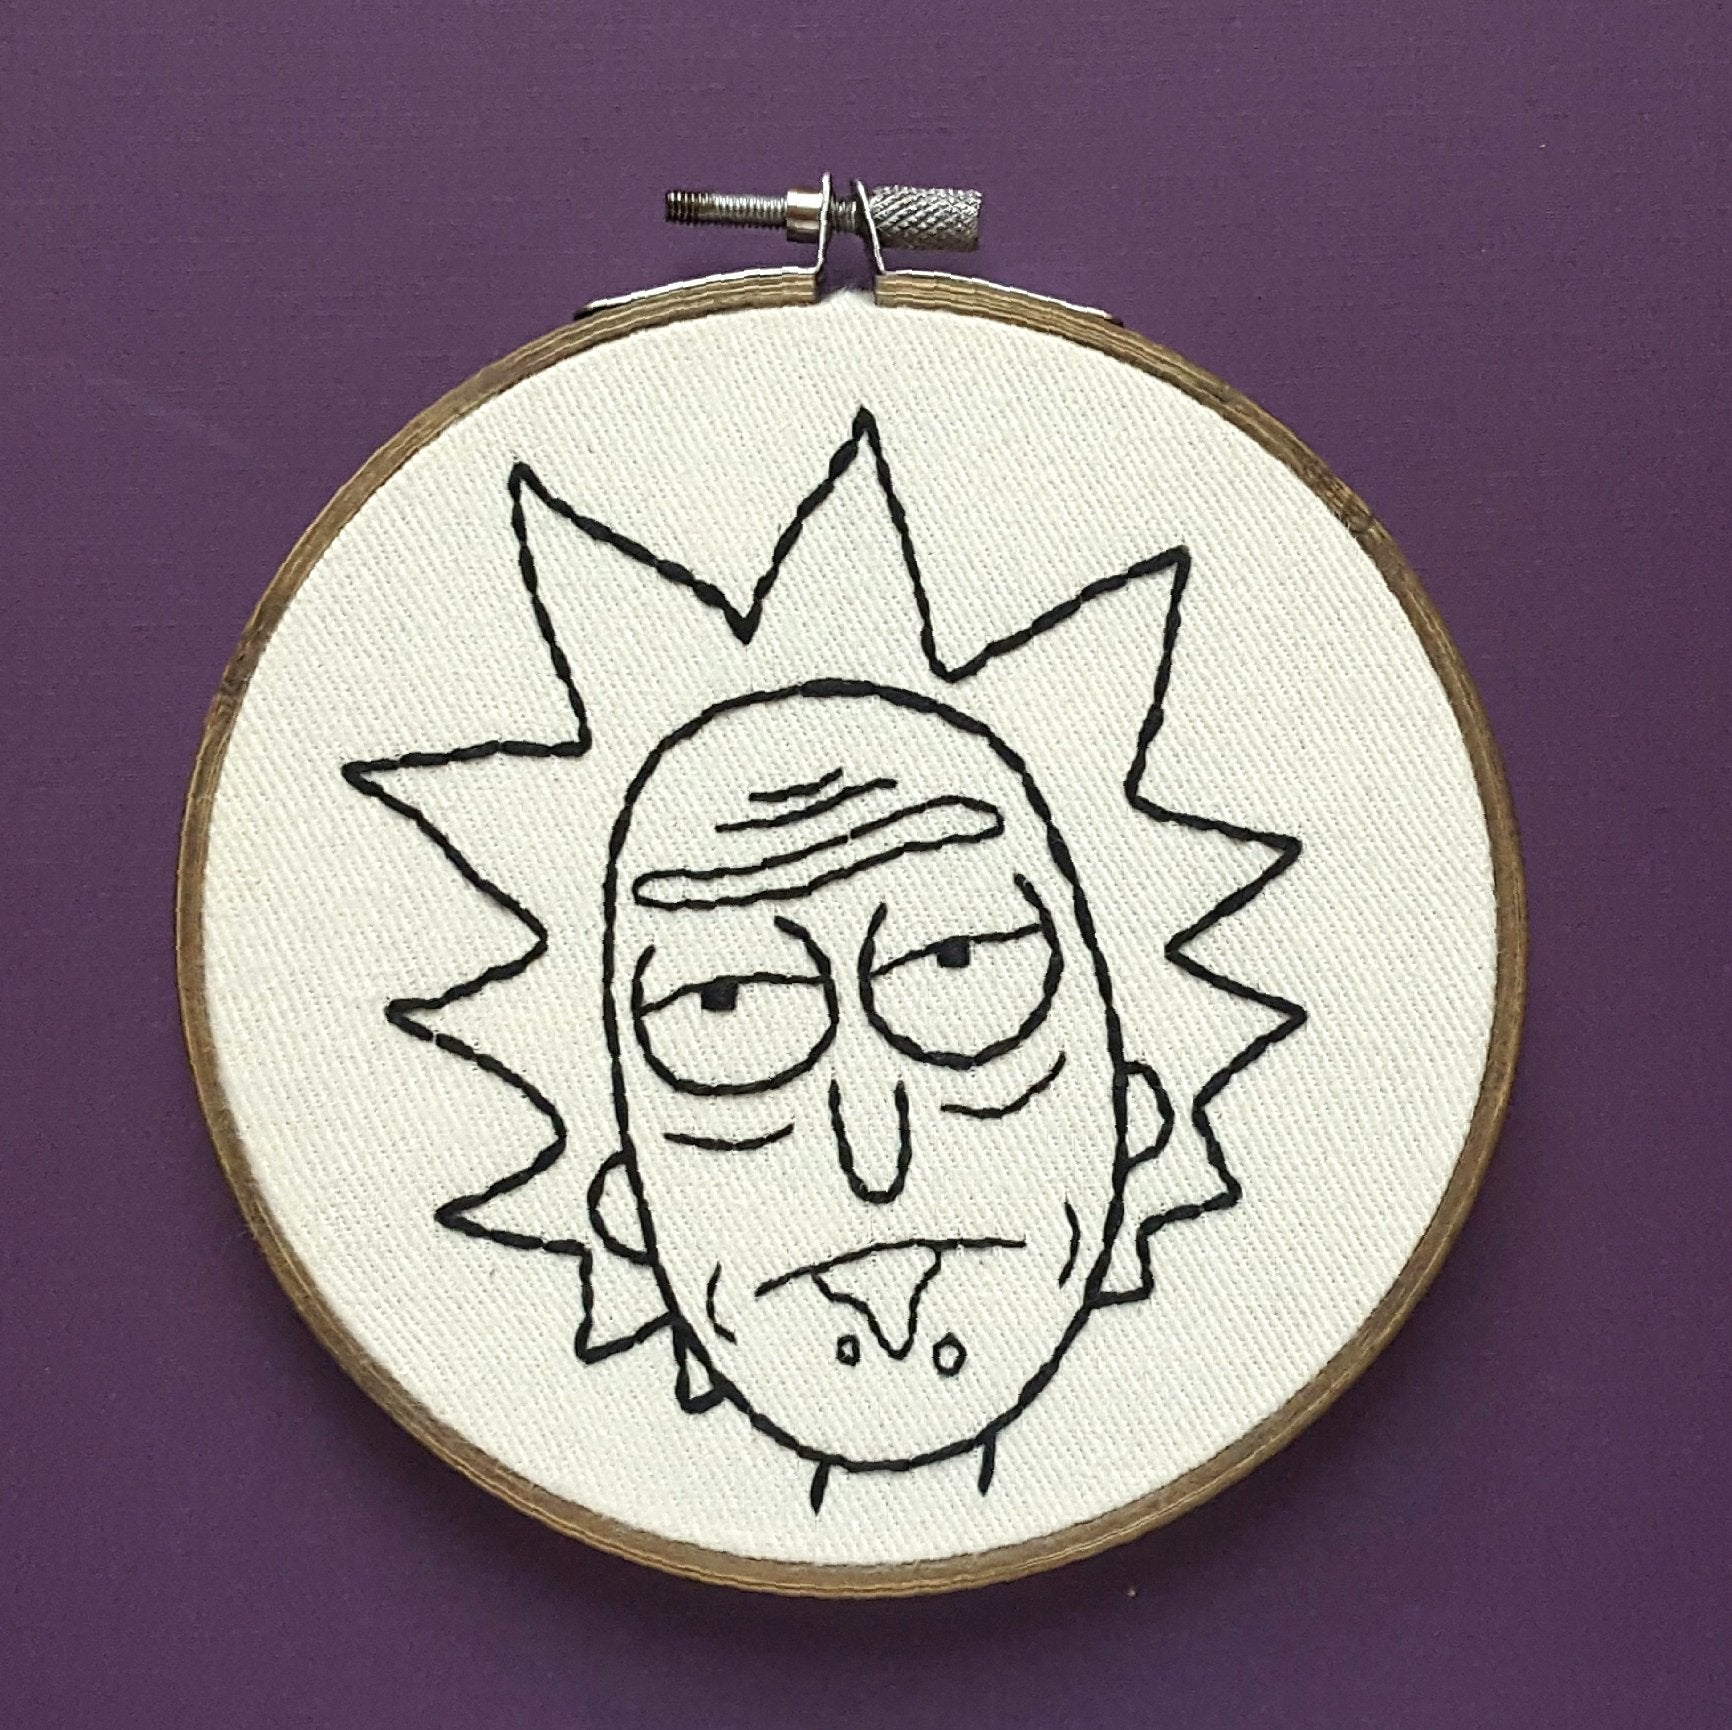 30 Days of Rickspressions - Day 5